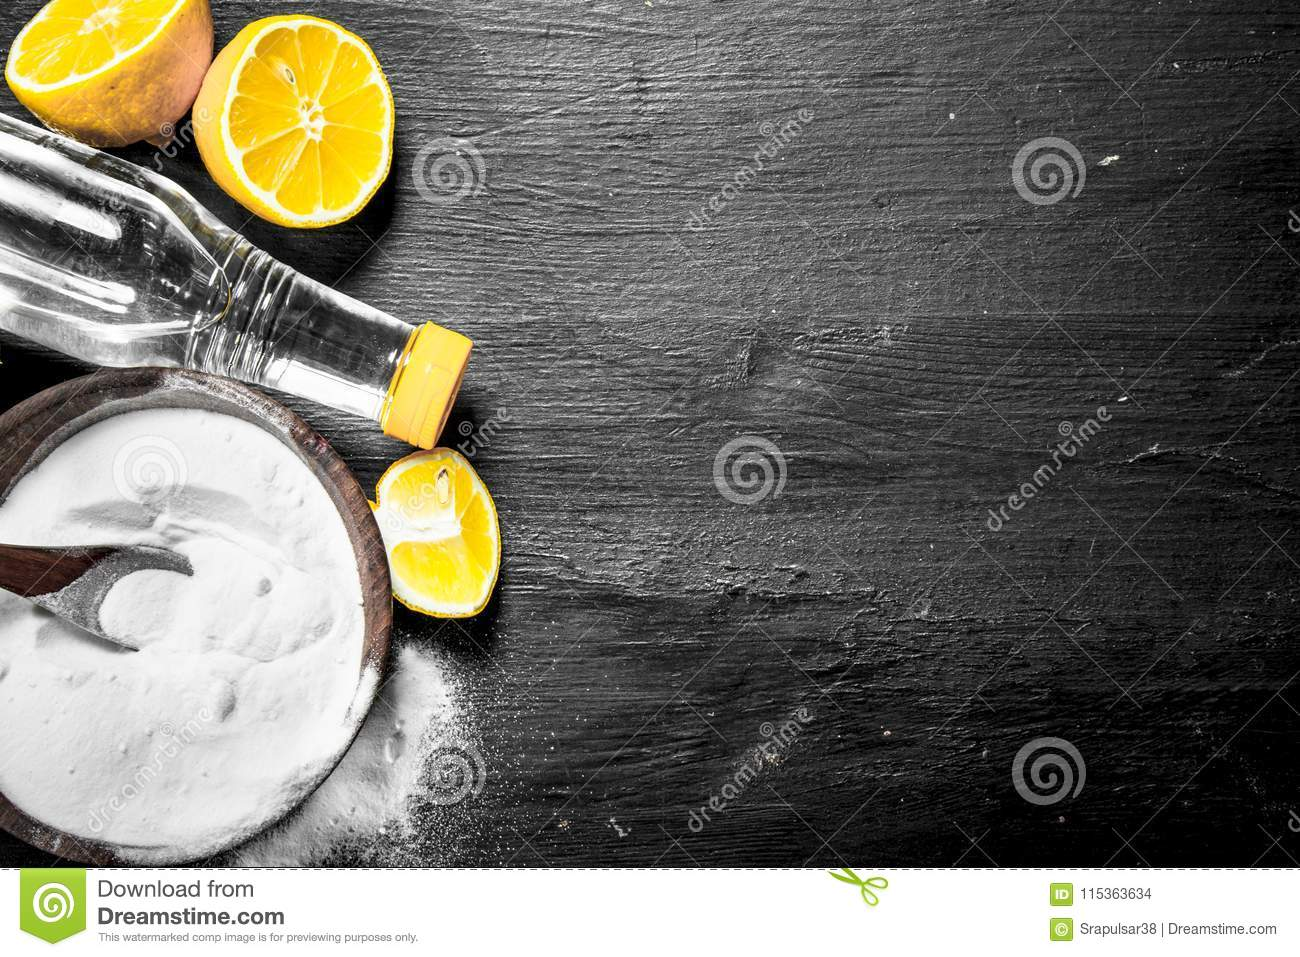 Baking Soda In A Bowl With Vinegar And Lemon Slices  Stock